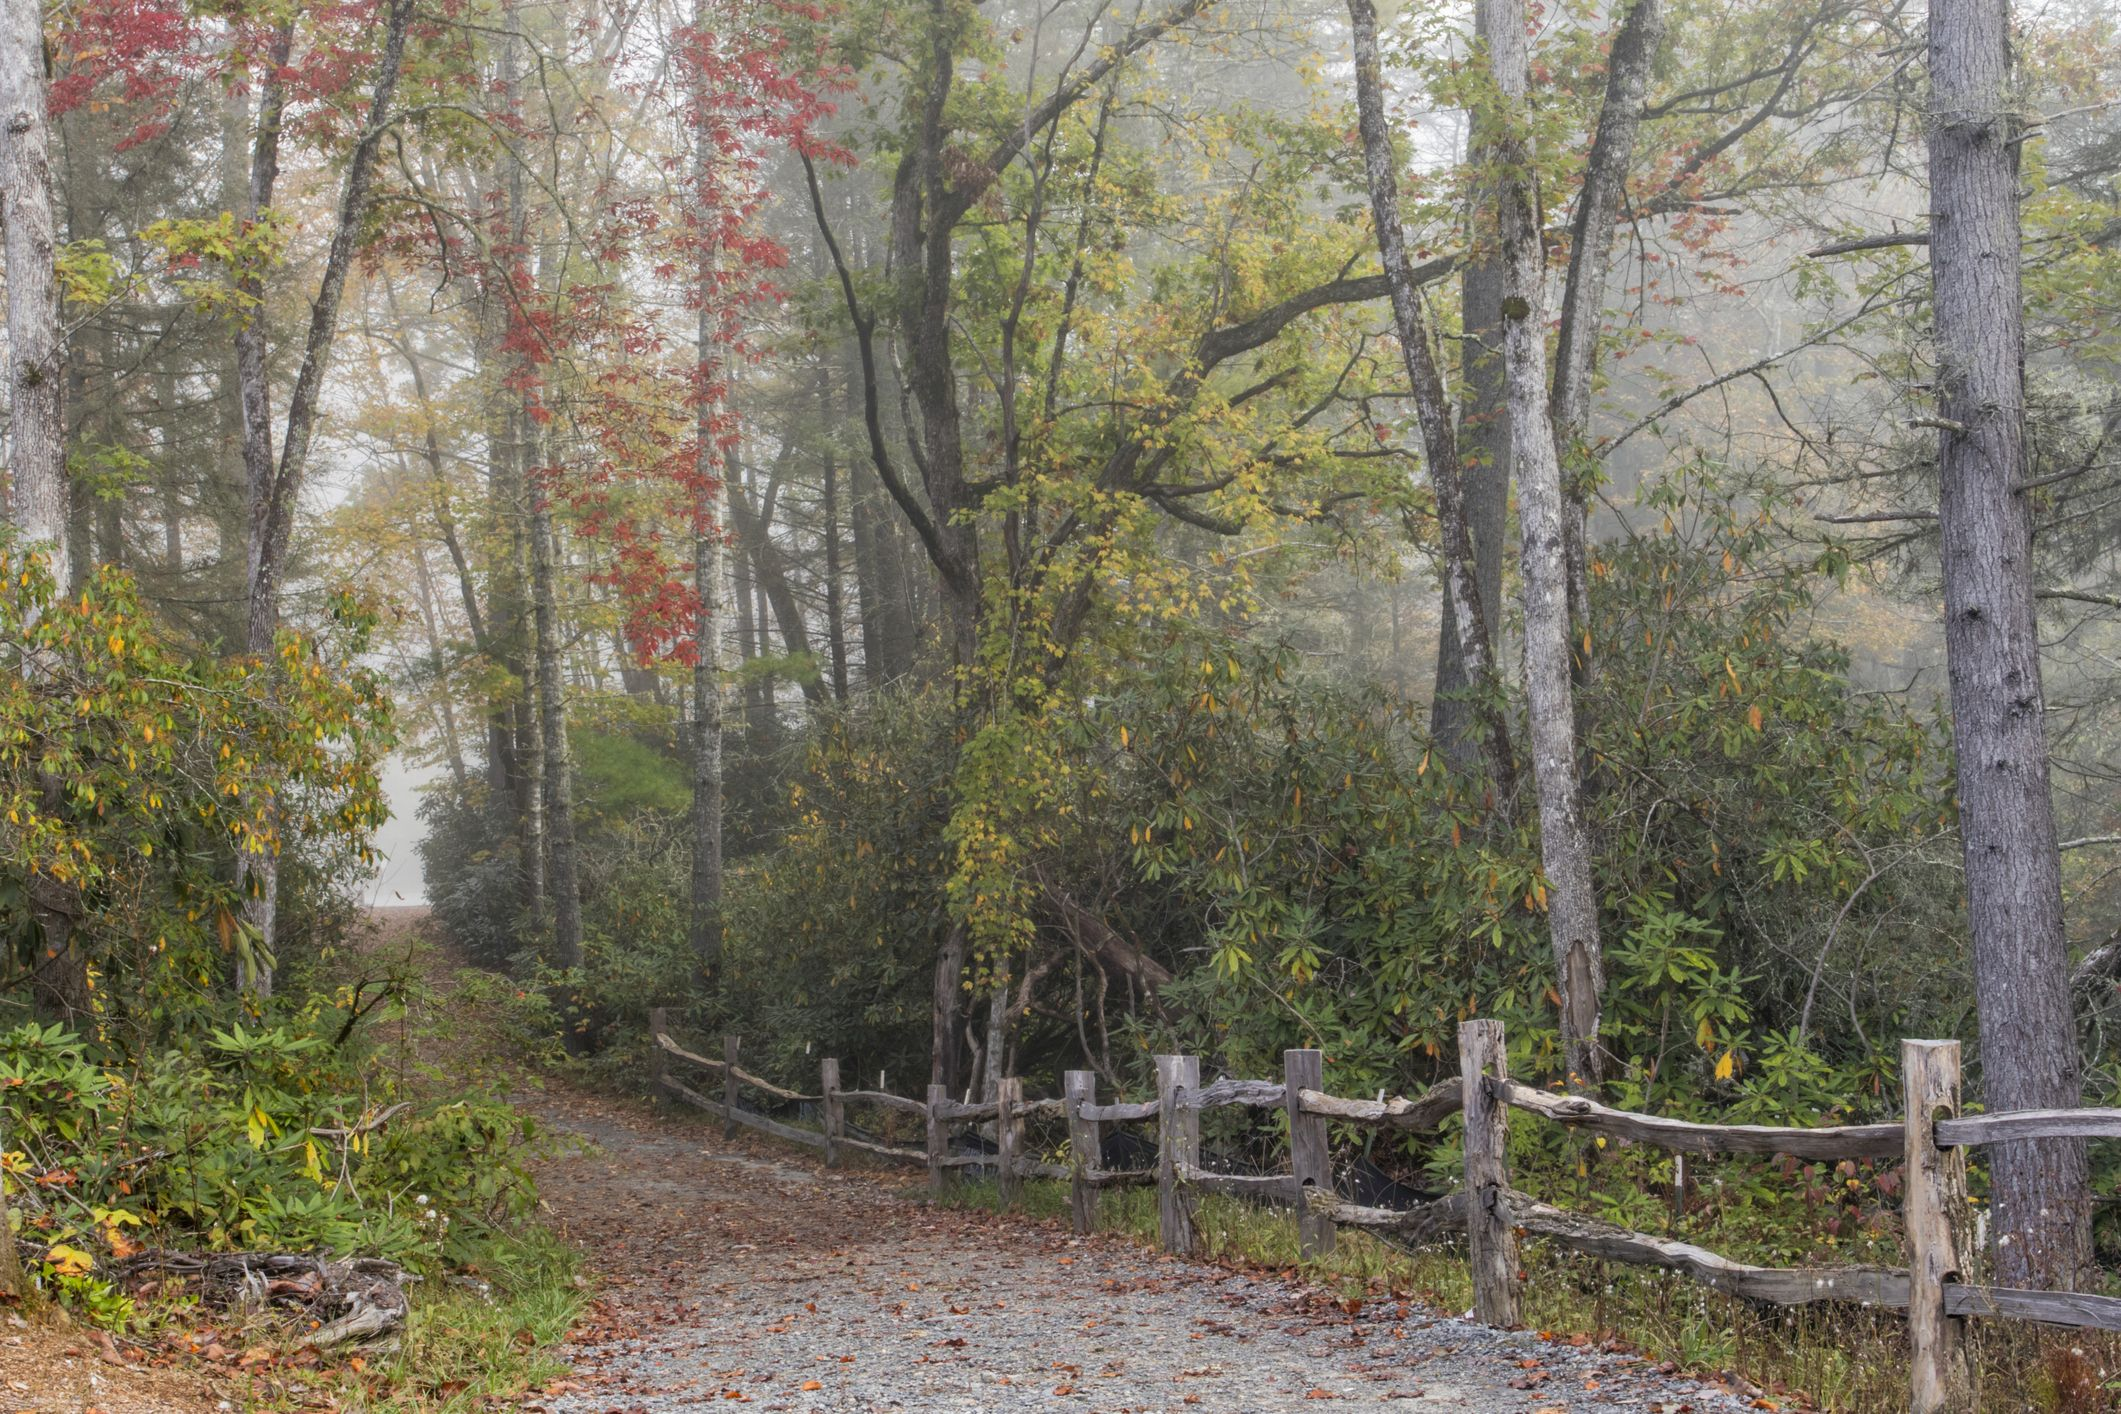 Footpath to Hooker Falls and autumn colors in fog, Dupont State Forest, near Brevard, North Carolina, USA